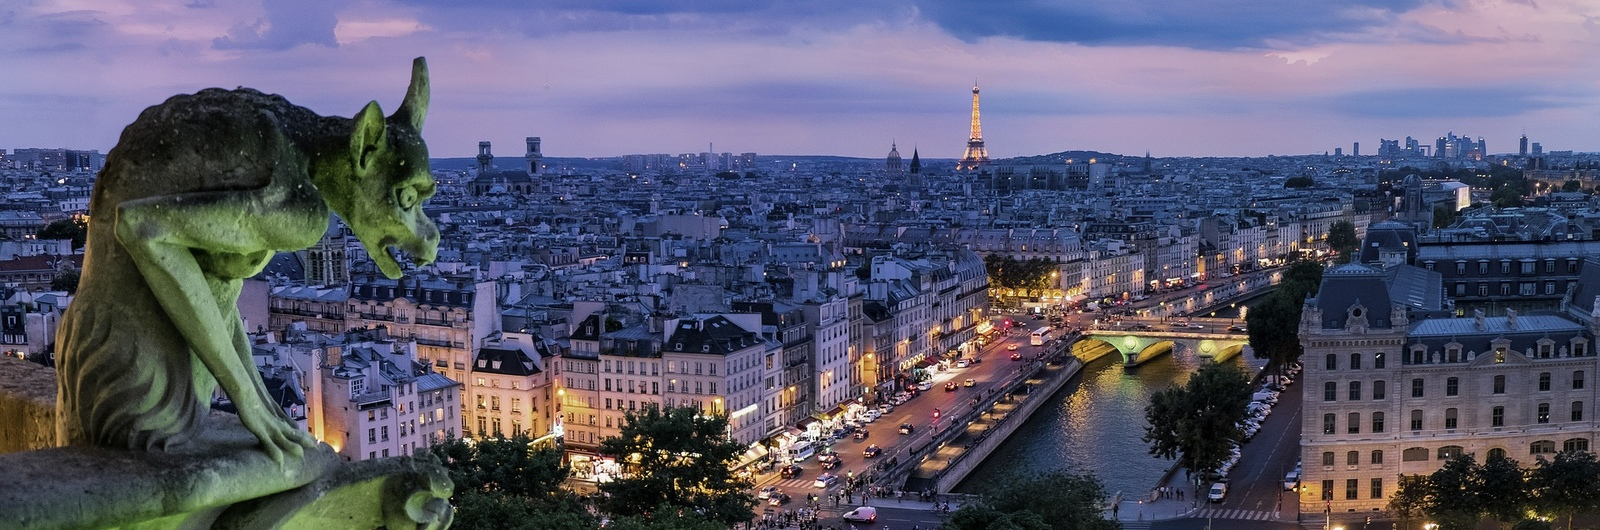 paris city header 2